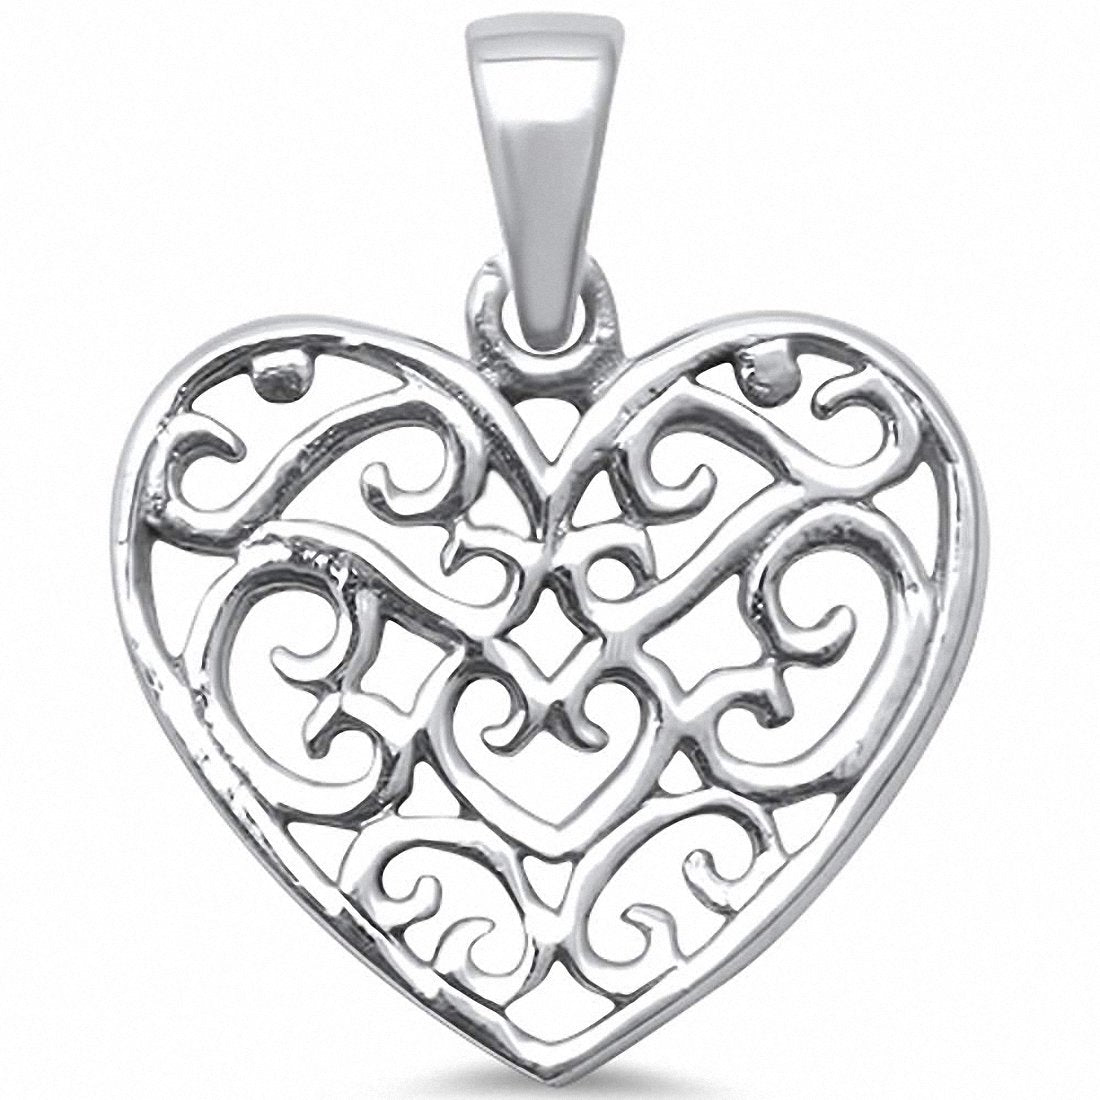 Heart Filigree Pendant Charm 925 Sterling Silver Choose Color